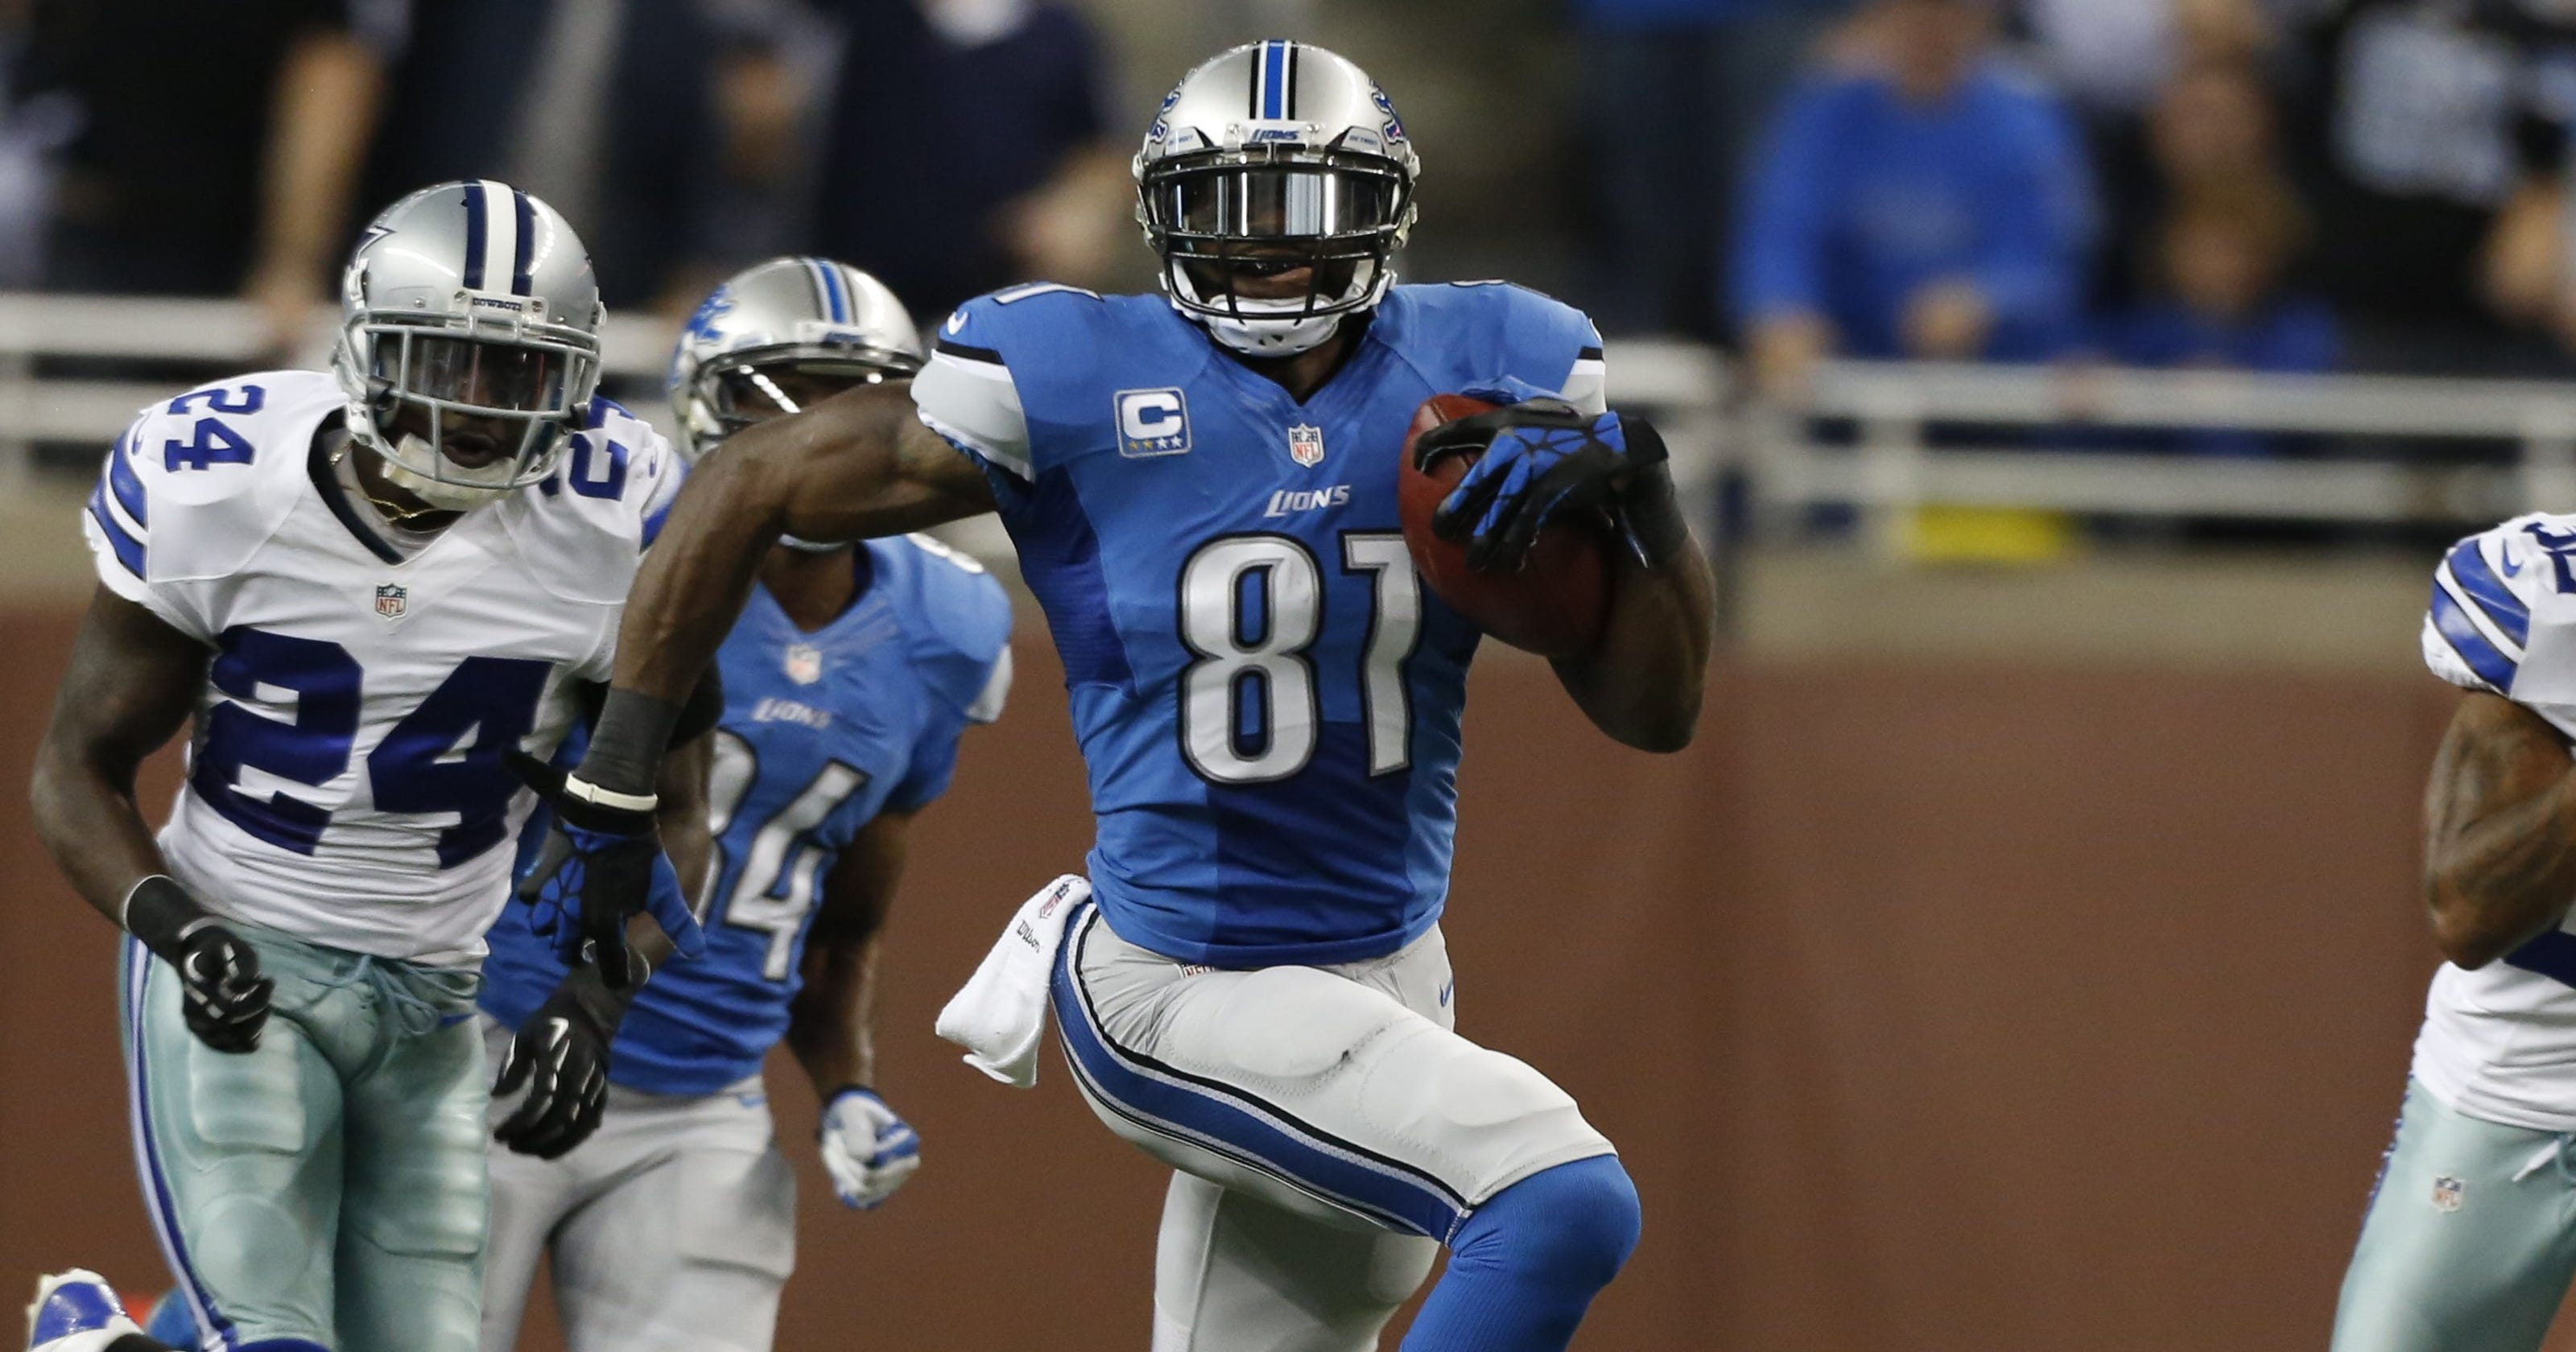 b38c343f2 Lions beat Cowboys at wire as Calvin Johnson explodes for 329 yards